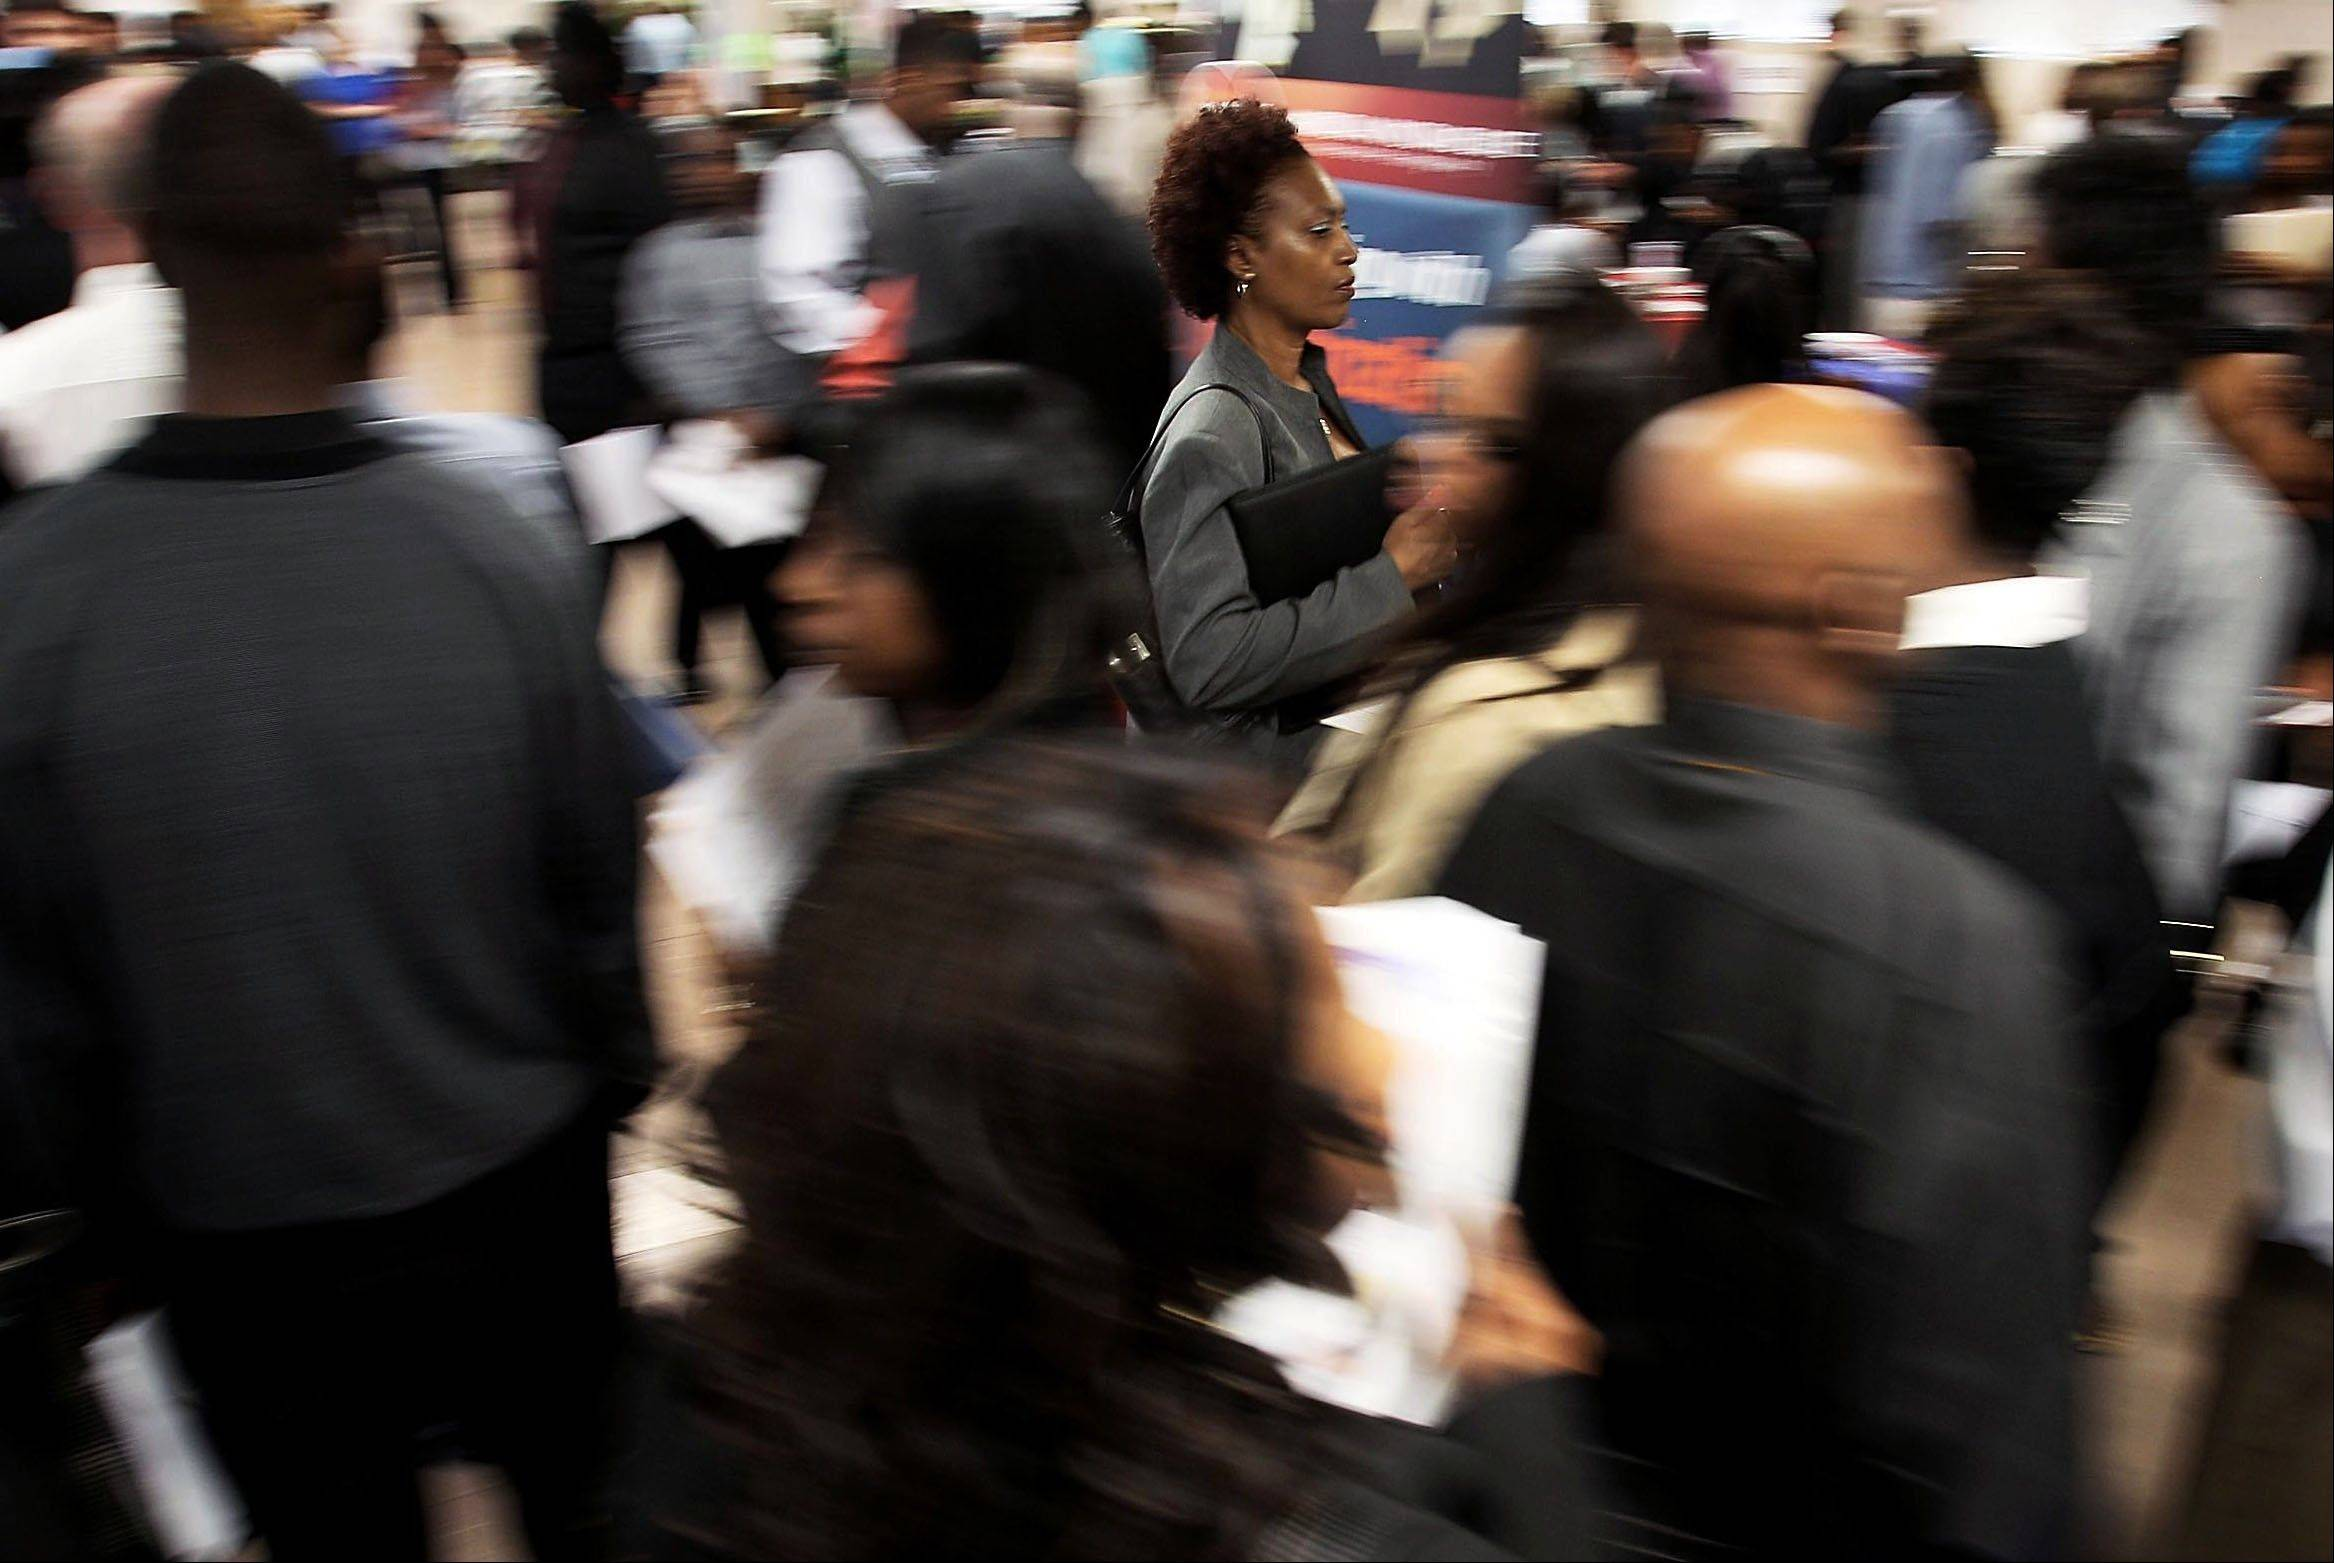 Solid hiring helped push down unemployment rates in 40 U.S. states last month, the most since November. The declines show job markets are improving in most areas of the country. The Labor Department says unemployment rates only rose in Louisiana, Tennessee and North Dakota. Rates were unchanged in seven states.